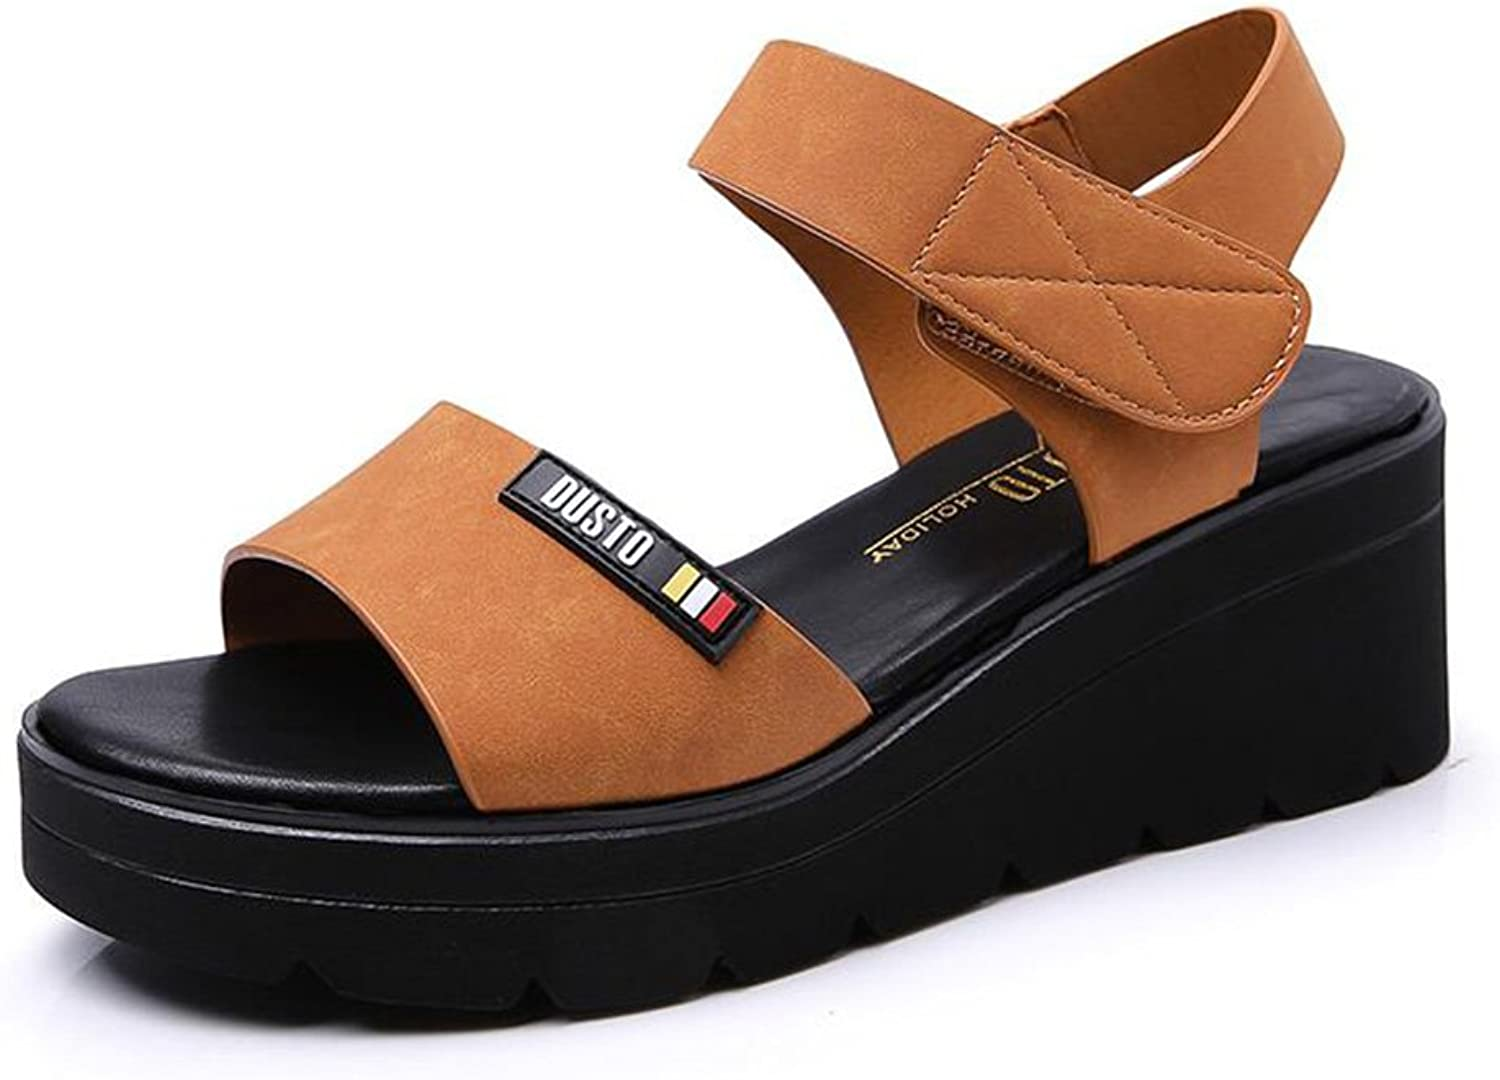 Jinsen Summer Casual High-Heeled Korean Version of The Platform shoes Thick-Soled Velcro shoes